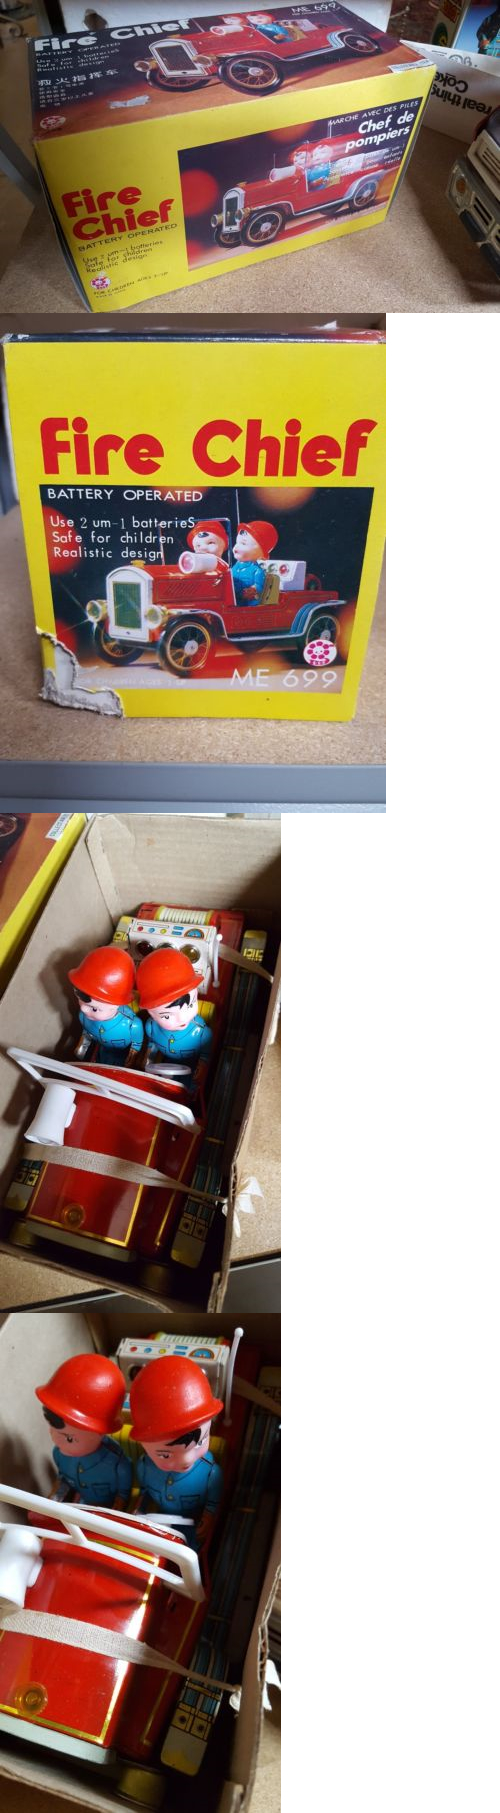 Toys and me images  Other Vintage Tin Toys  Vintage Battery Operated Fire Chief Toy